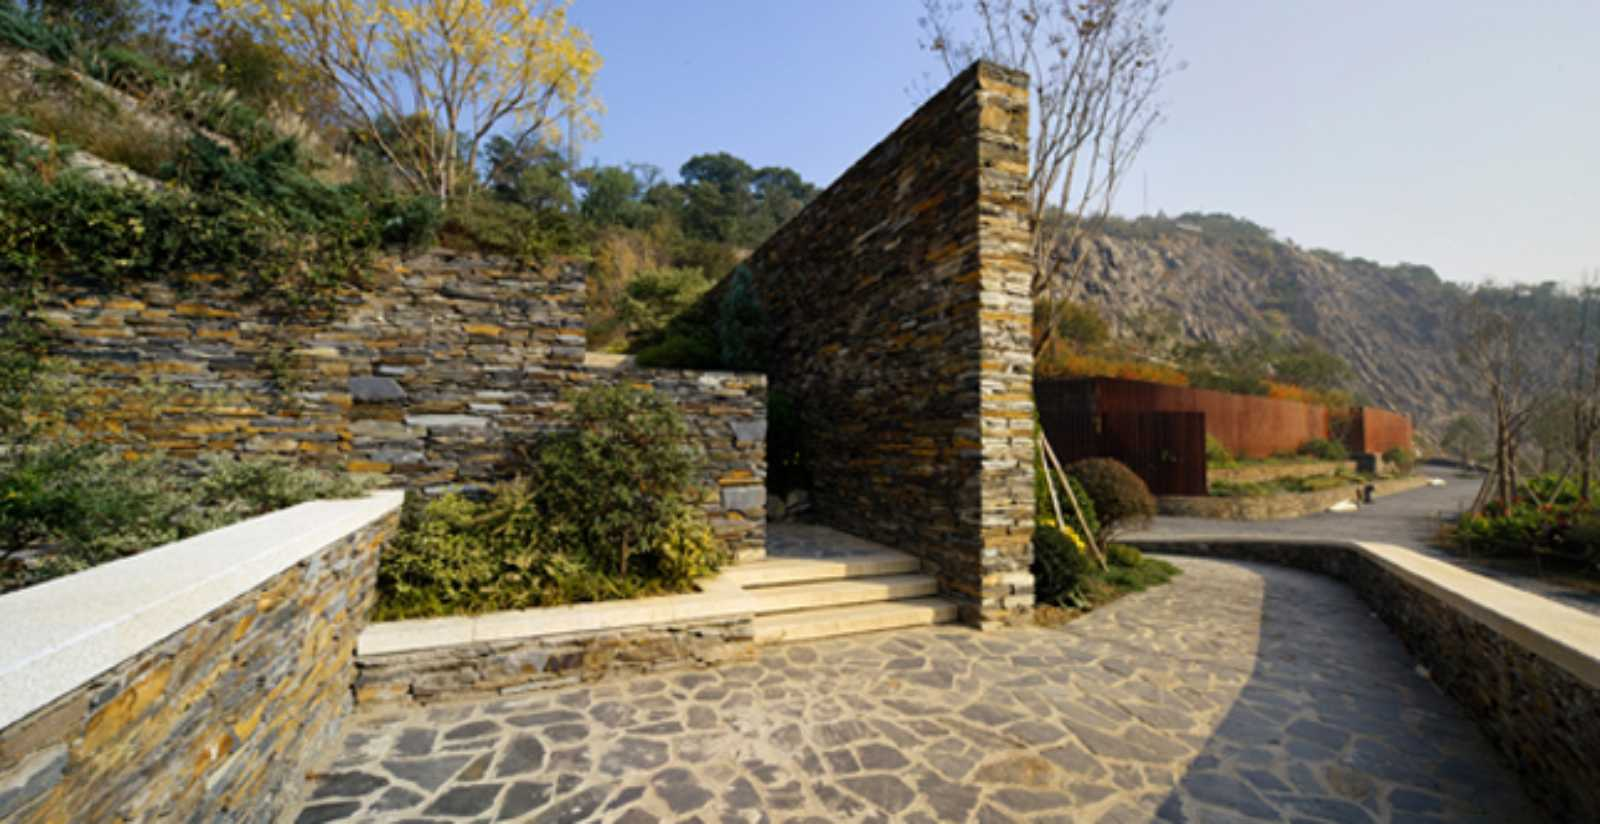 Quarry garden by thupdi tsinghua university for Form garden architecture